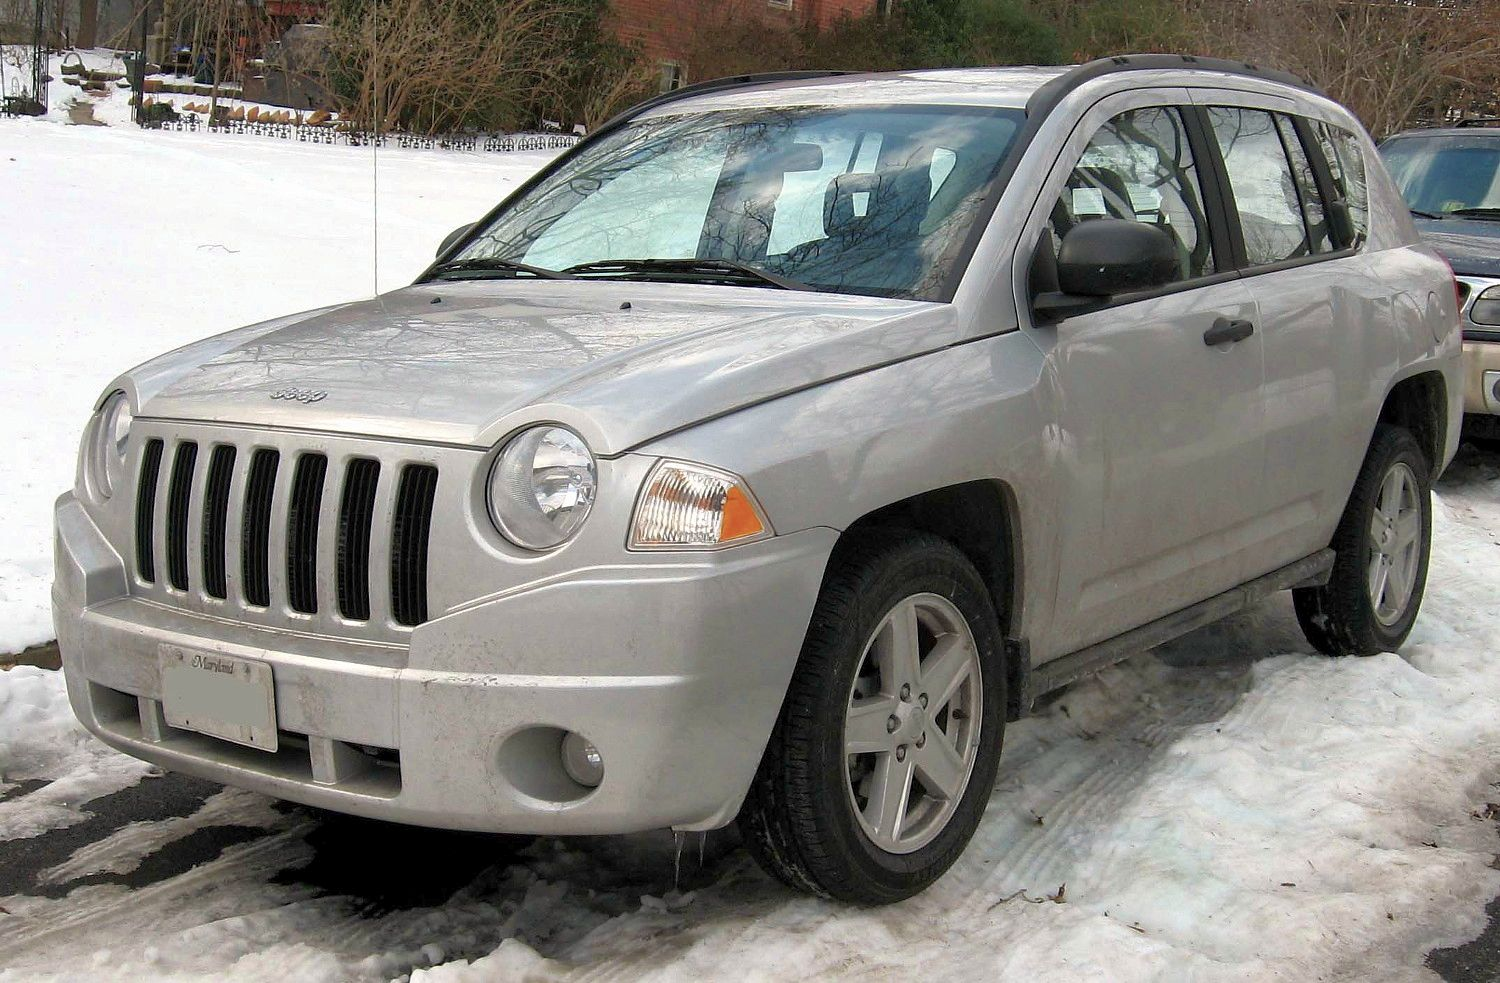 file 2007 jeep compass wikimedia commons. Black Bedroom Furniture Sets. Home Design Ideas